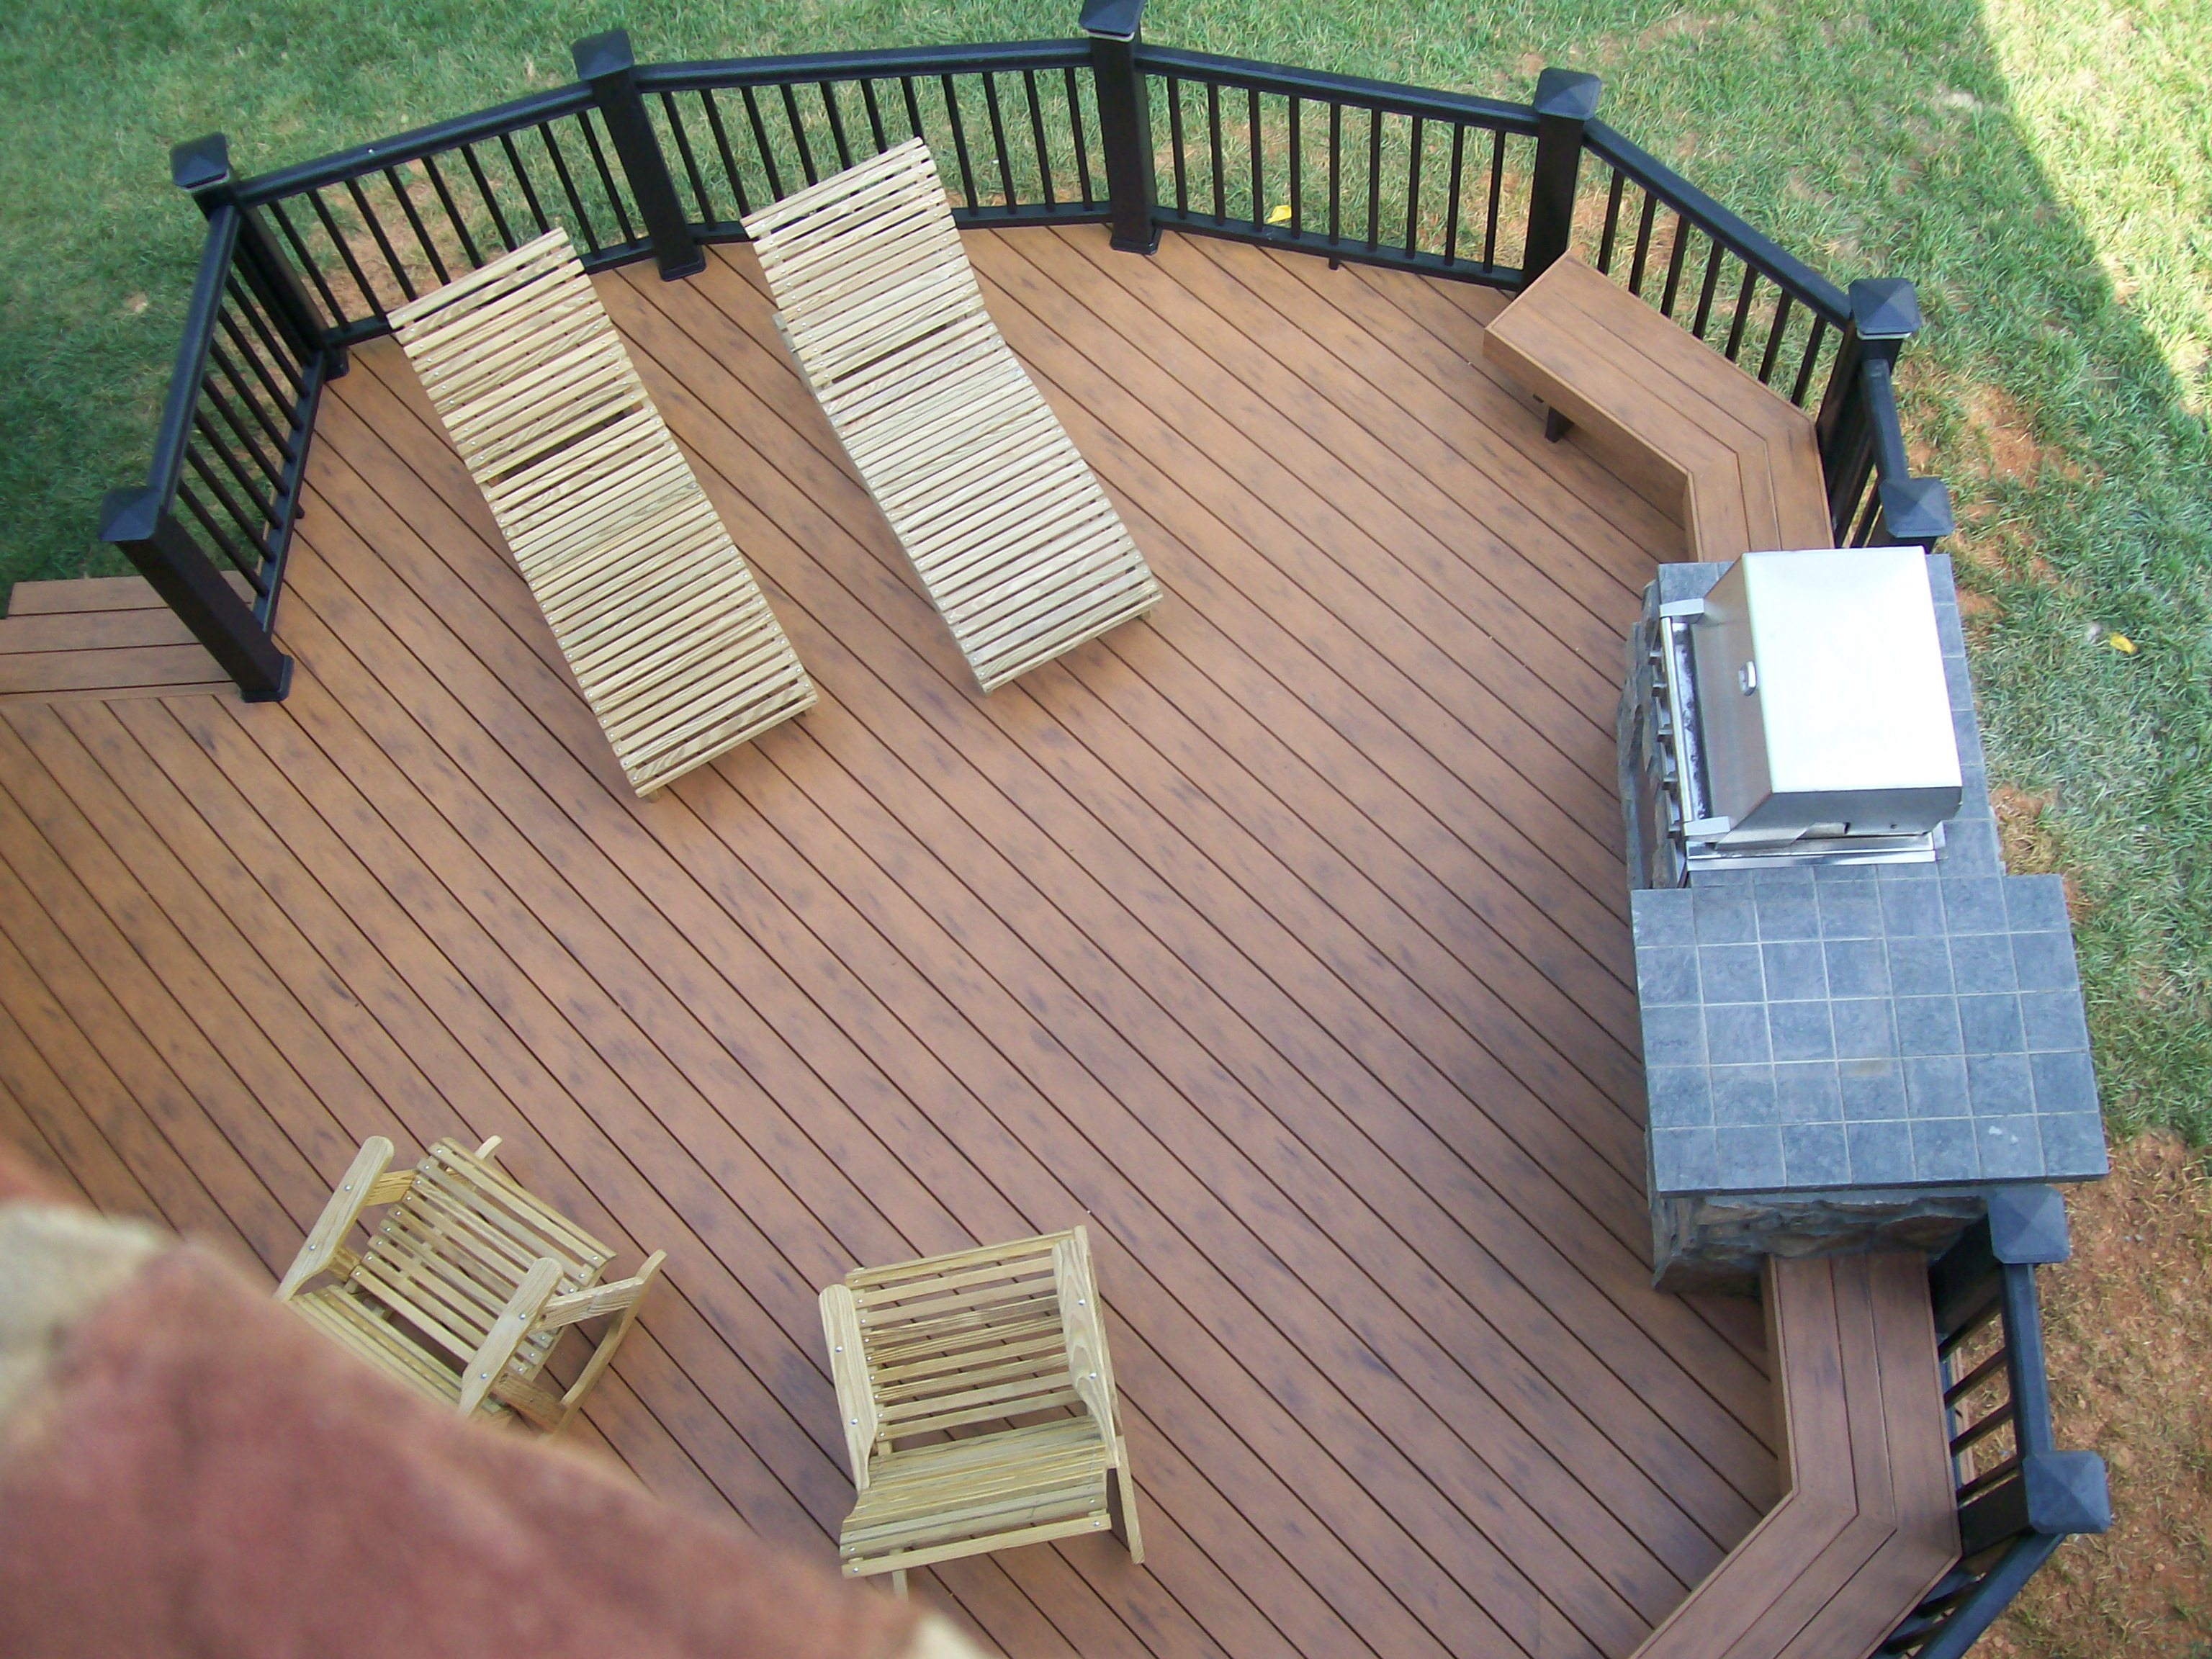 What Is The Proper Depth For Deck Footings And Material To